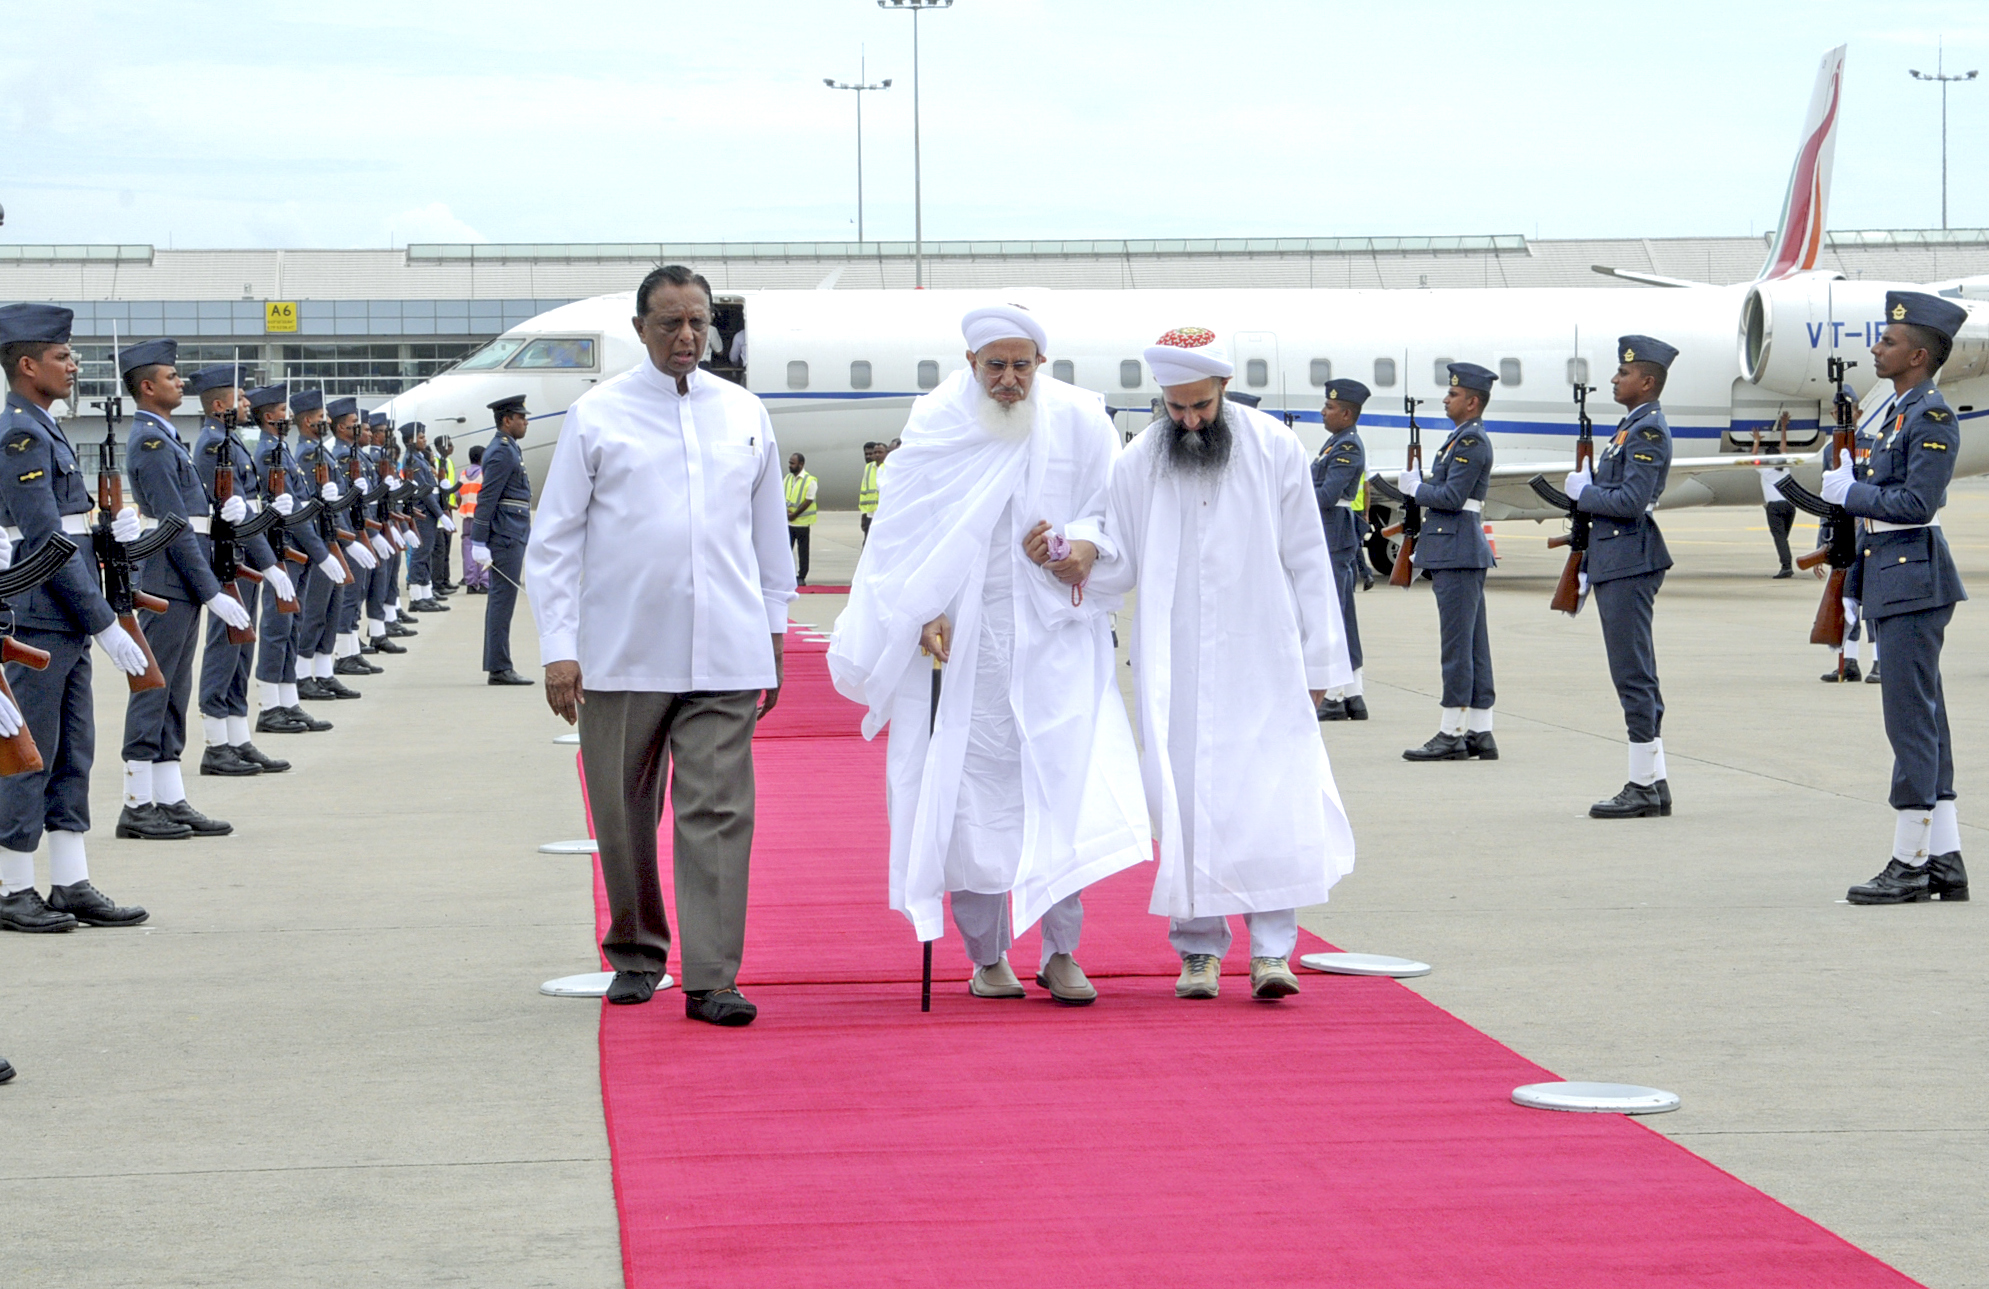 Syedna welcomed at Colombo Airport